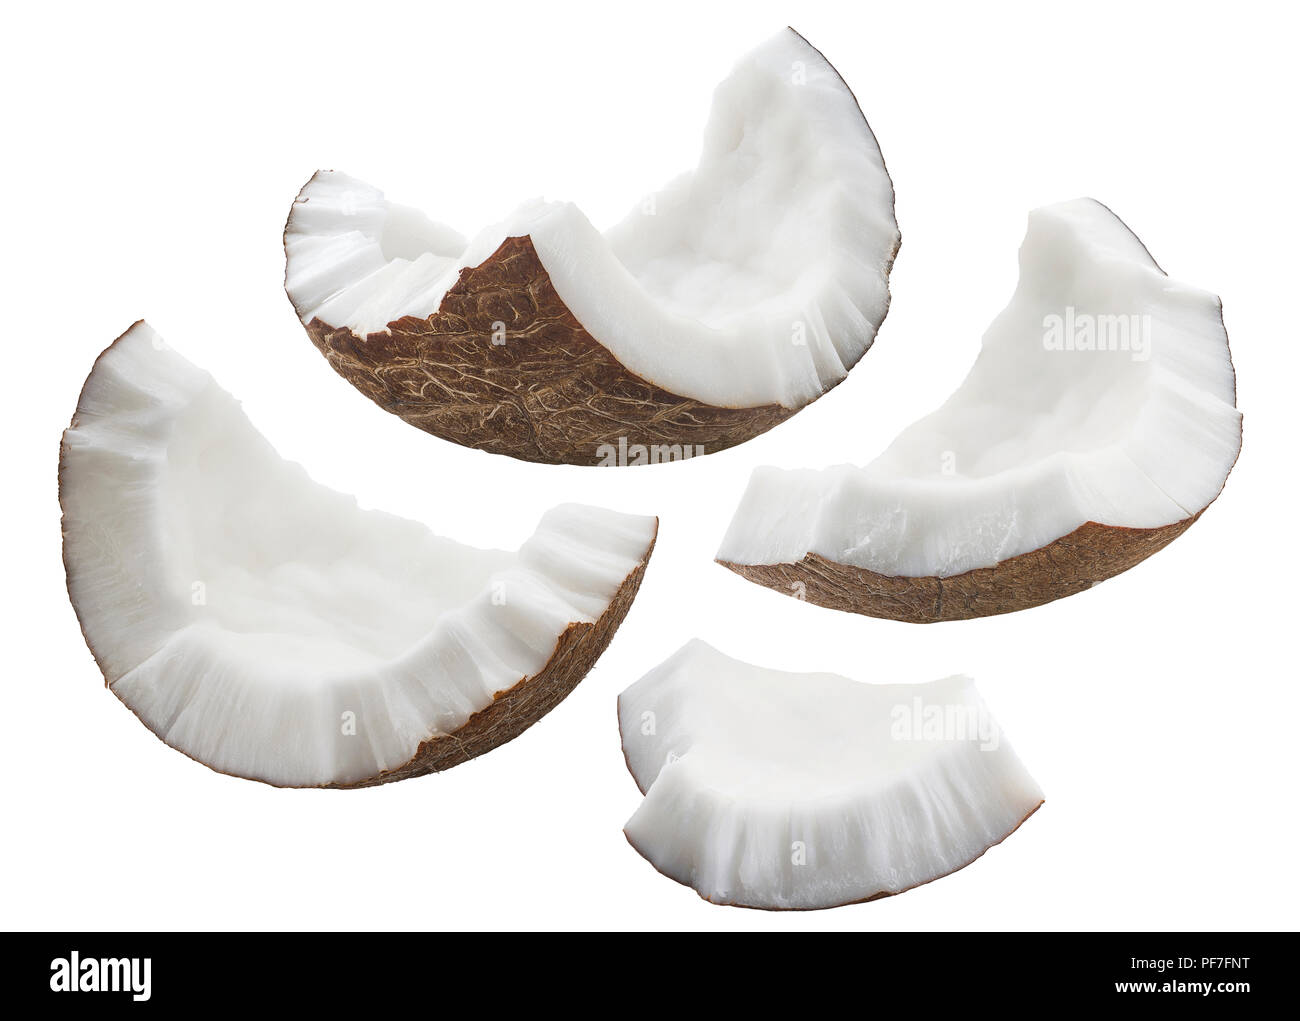 Coconut shell pieces set isolated on white background as package design element - Stock Image